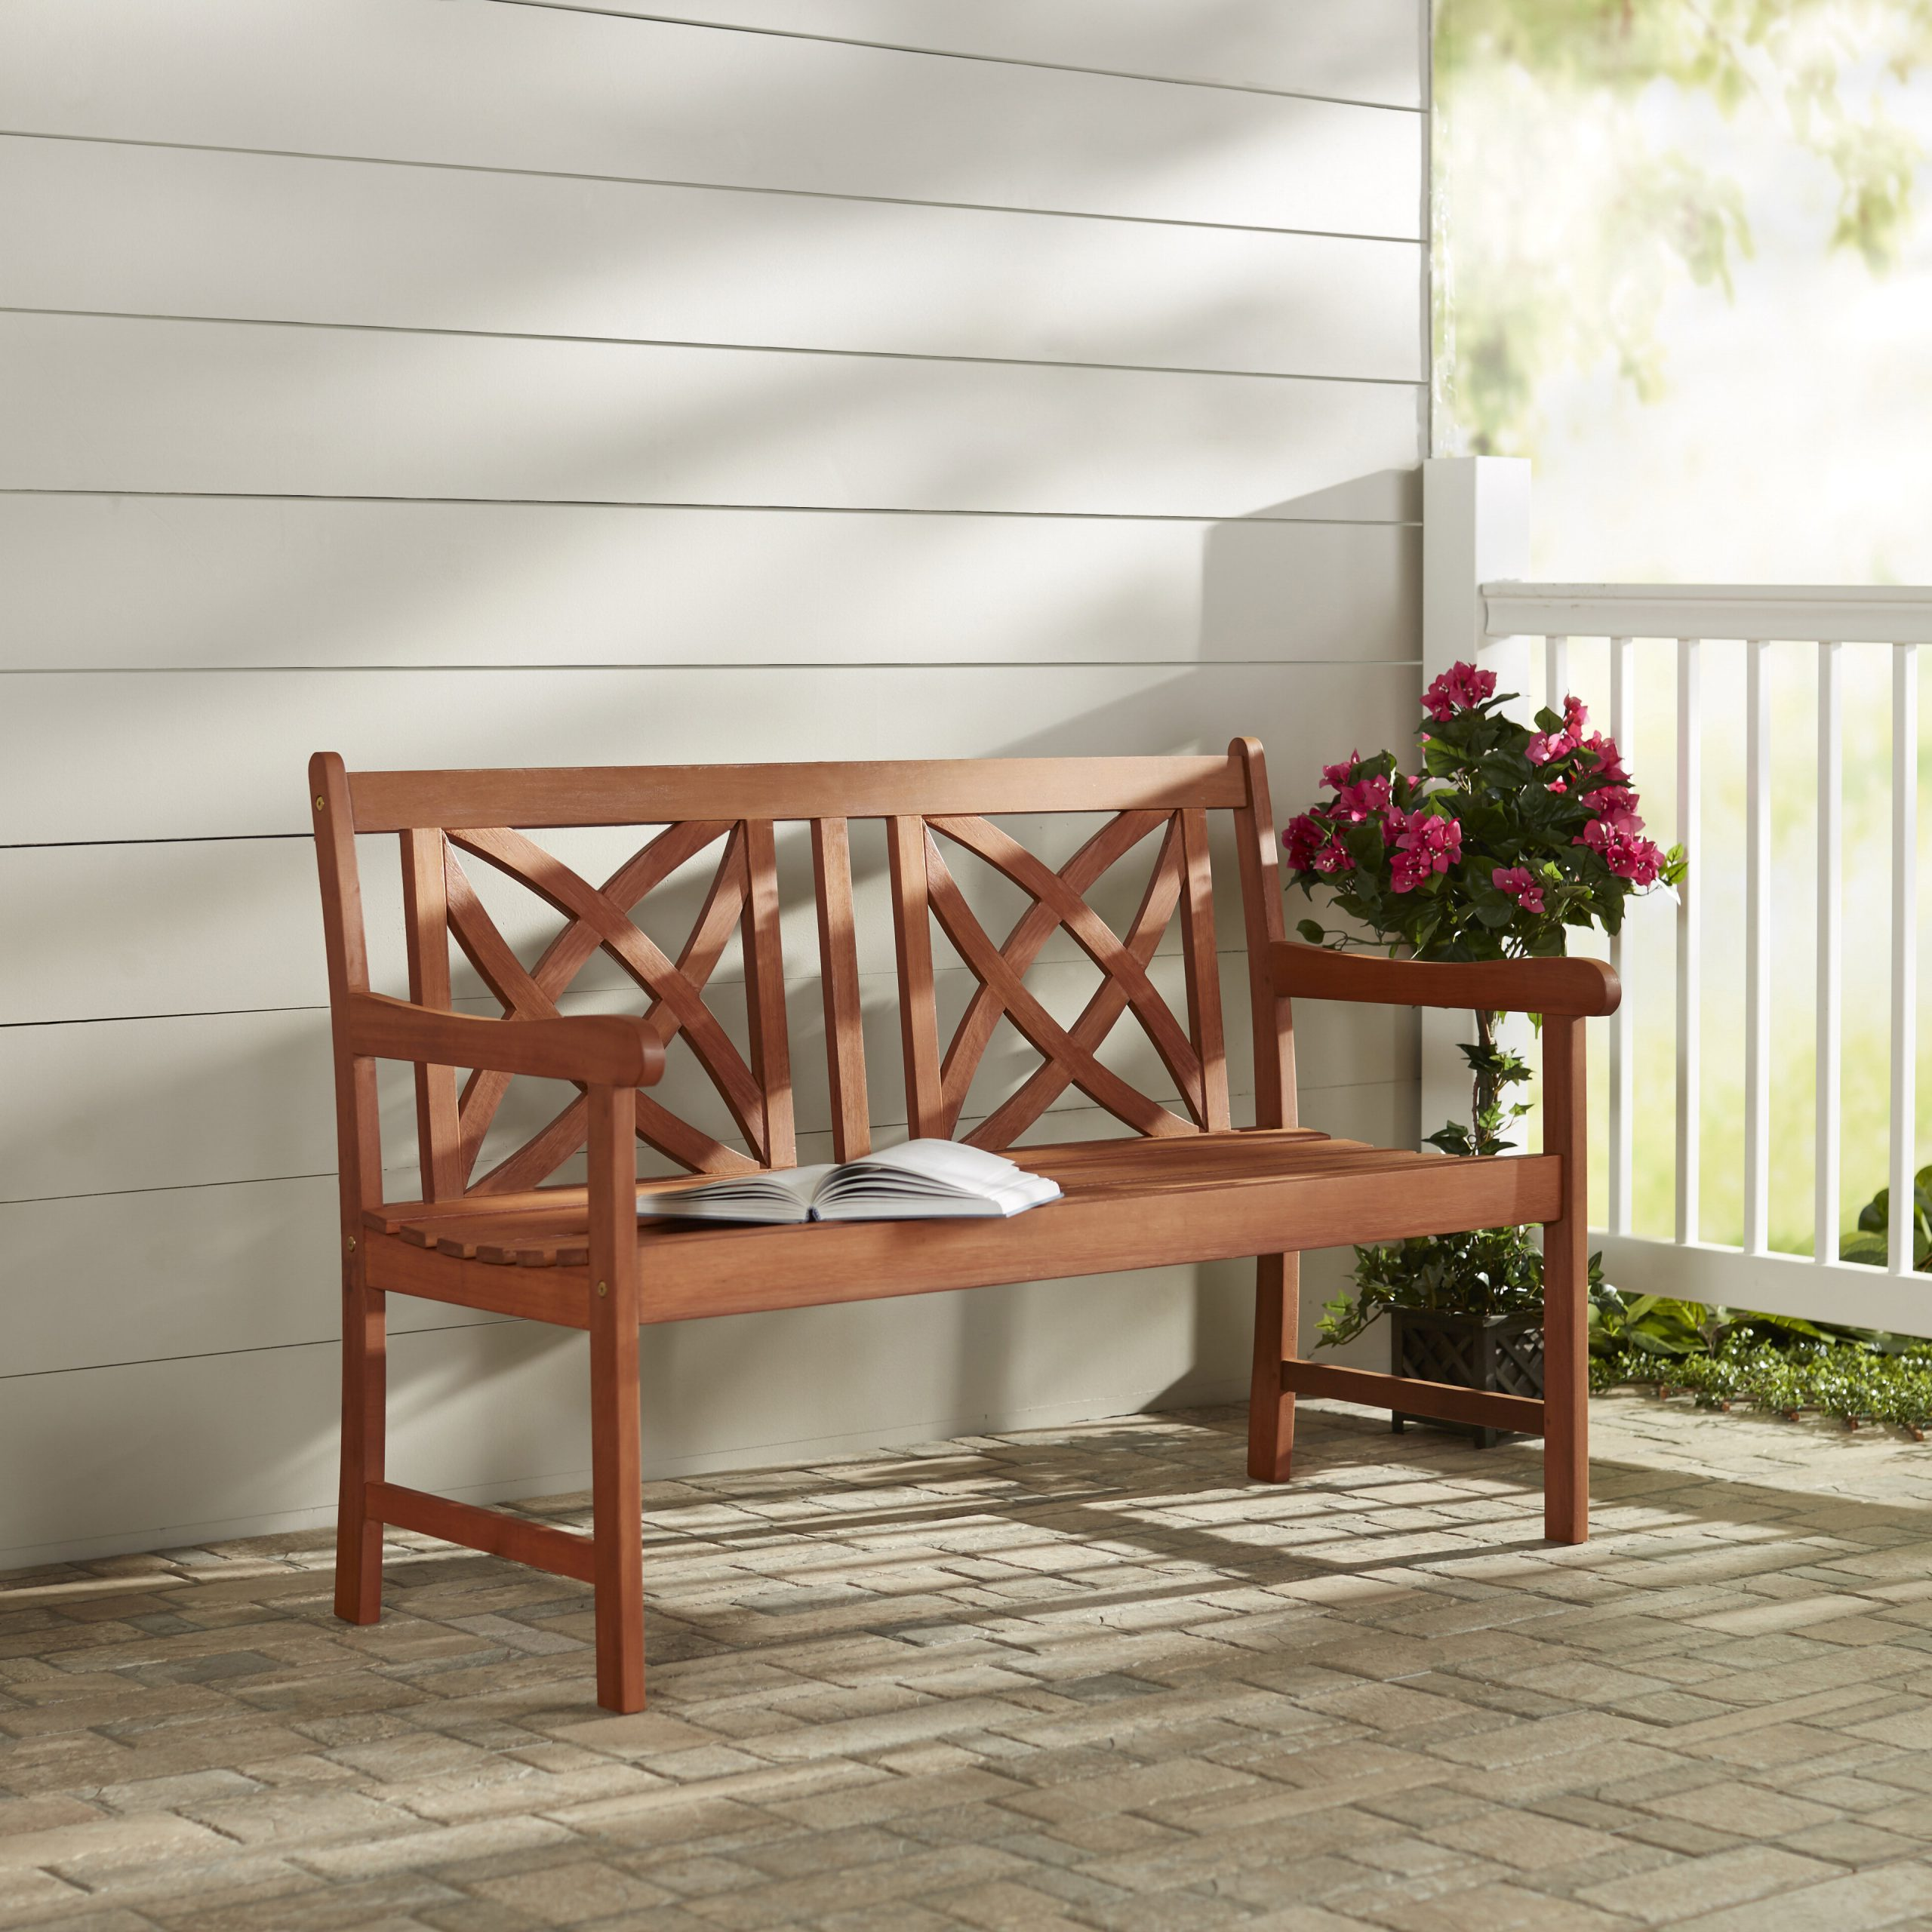 Aranita Tree Of Life Iron Garden Benches With Widely Used Garden Outdoor Benches You'll Love In (View 12 of 30)